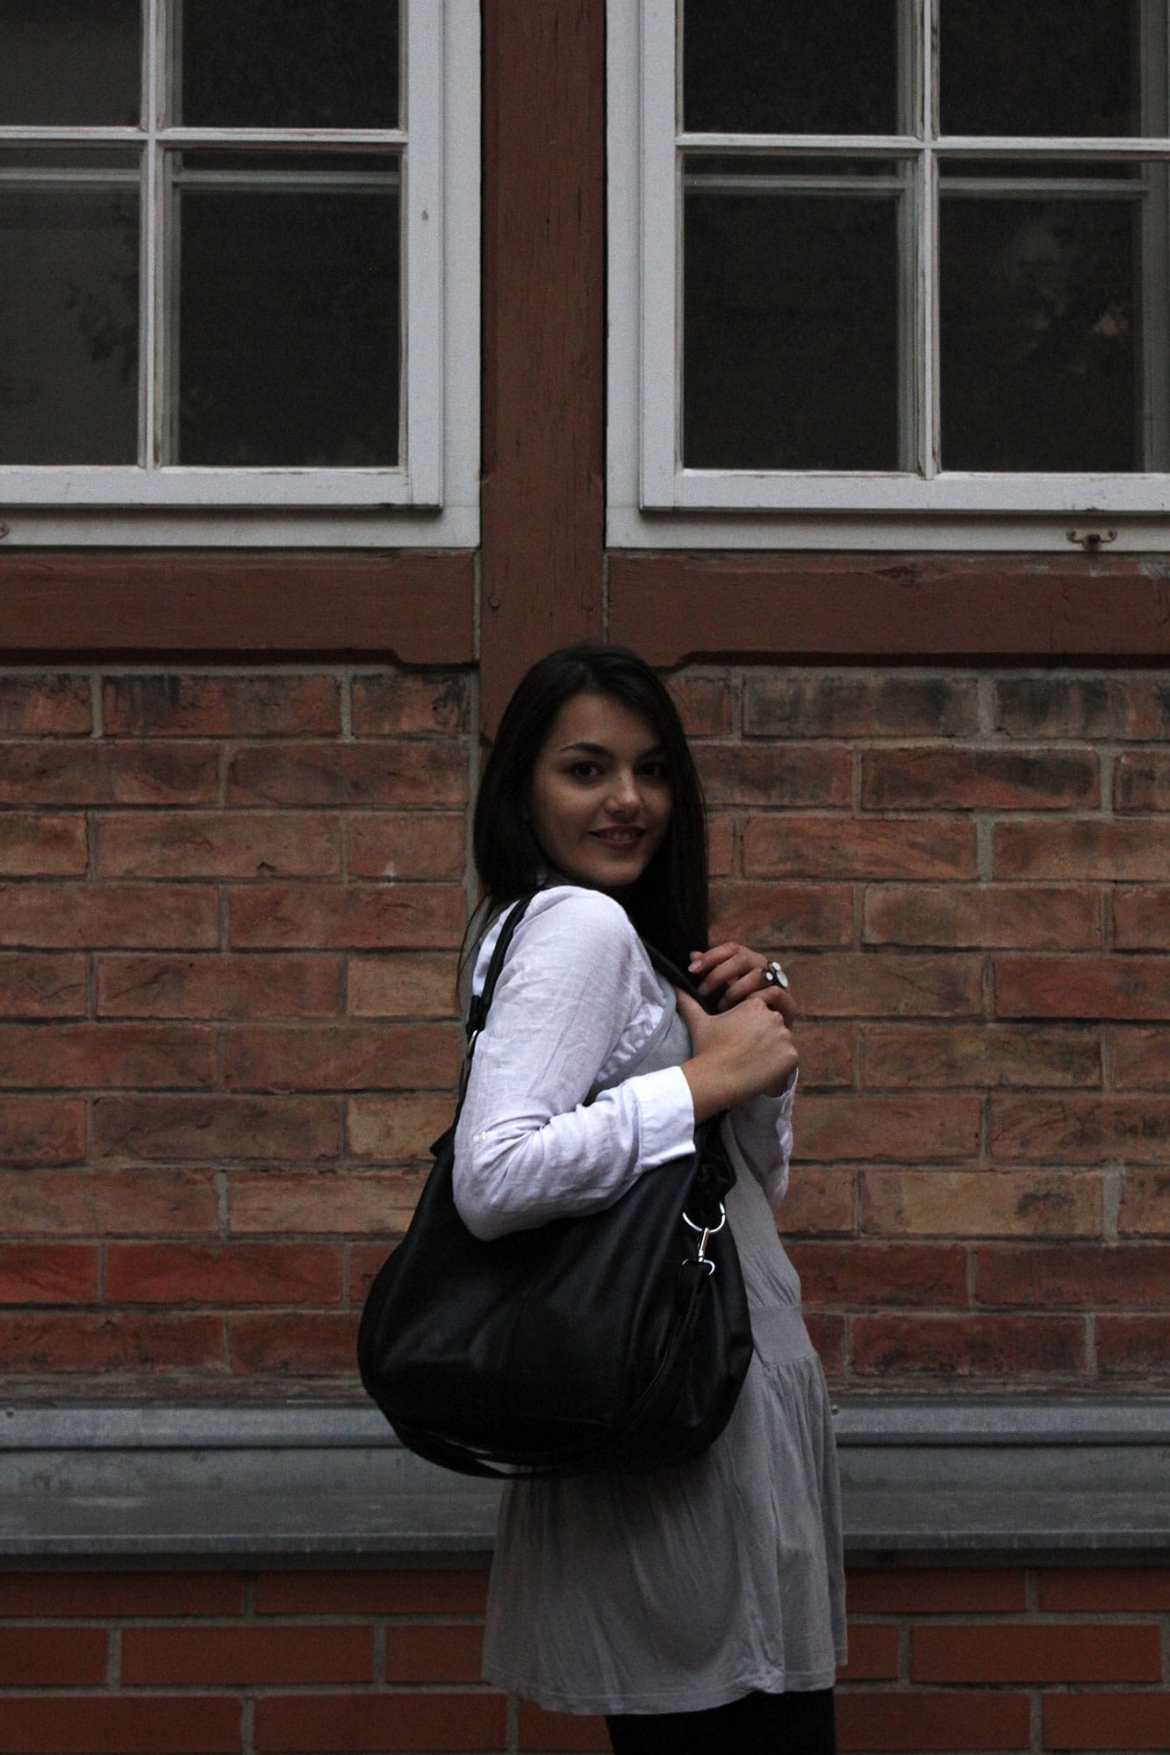 Dorie waring a black bag, grey dress and white blouse, looking to her side in to the camera